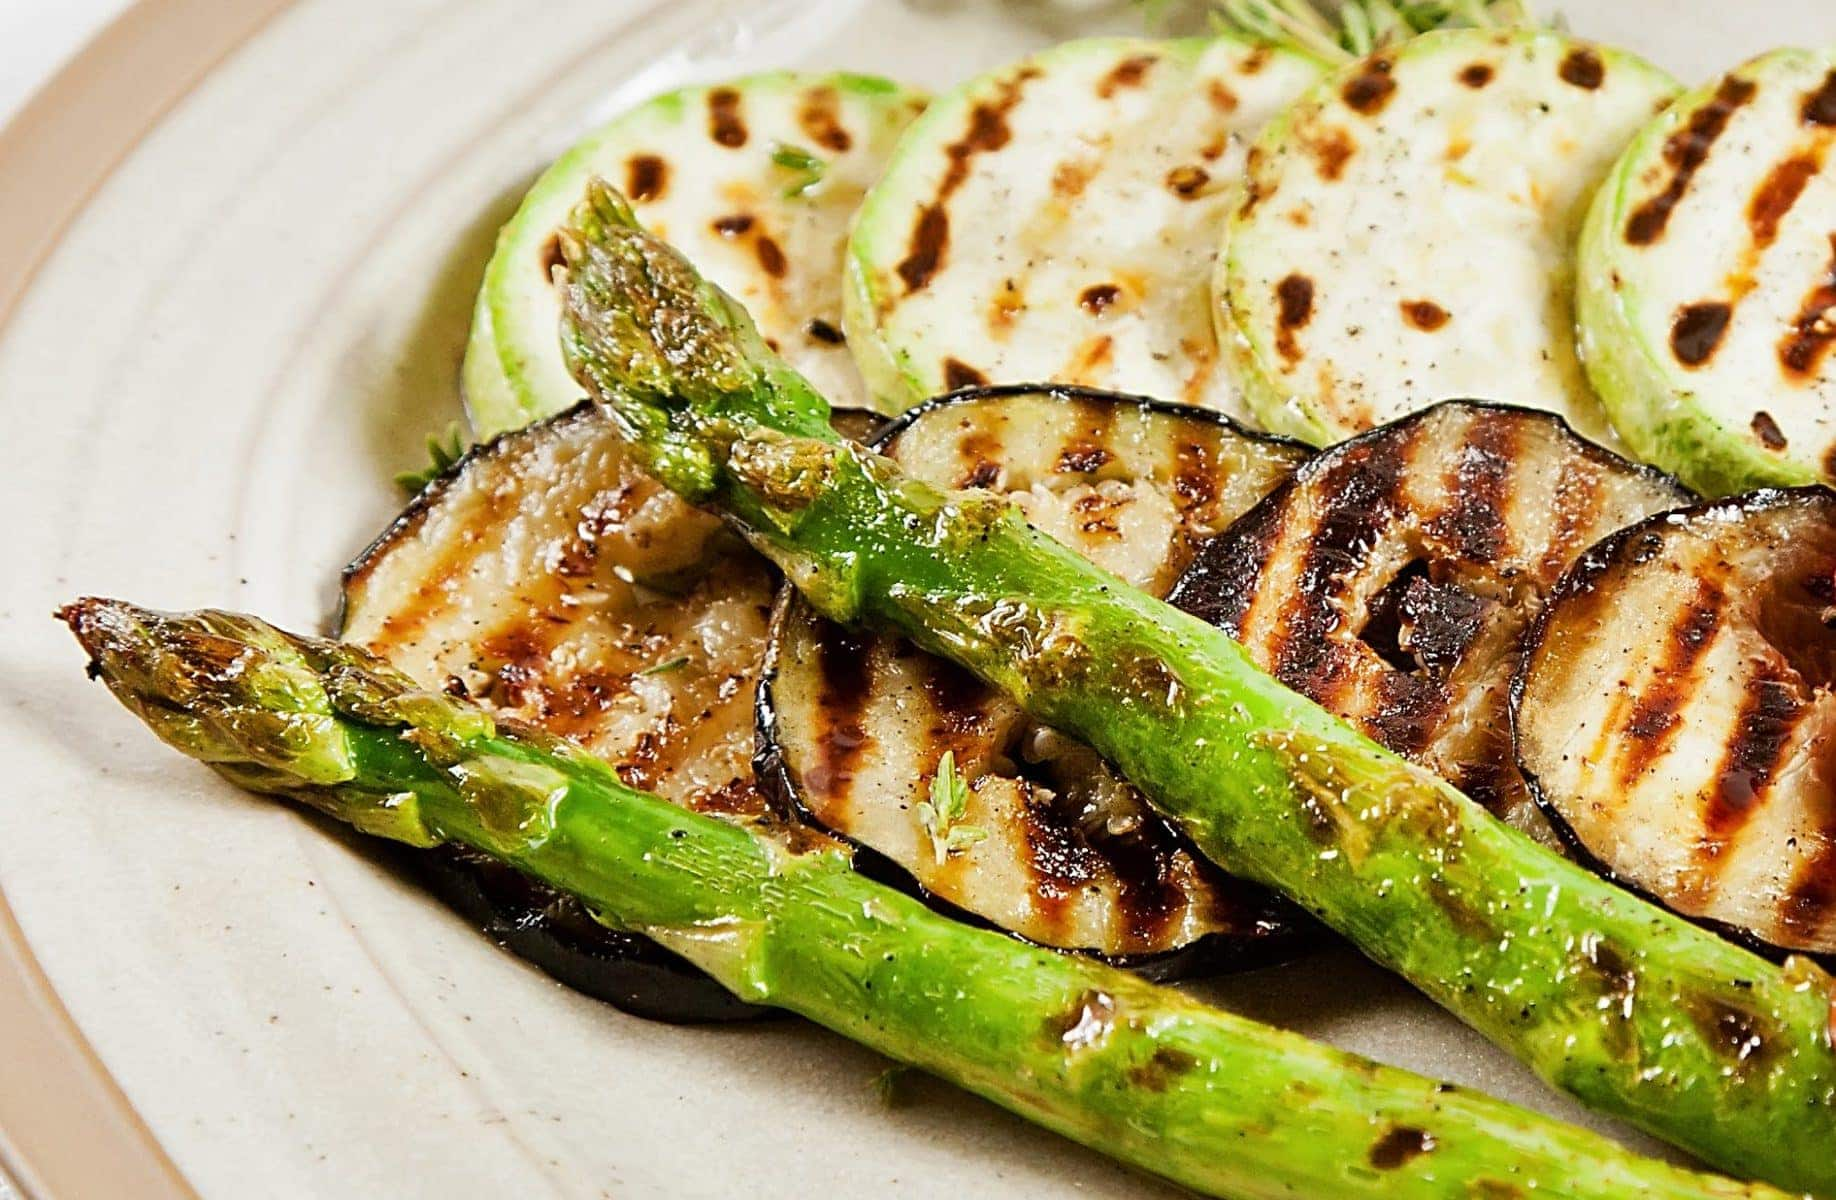 Barbecued asparagus and eggplant